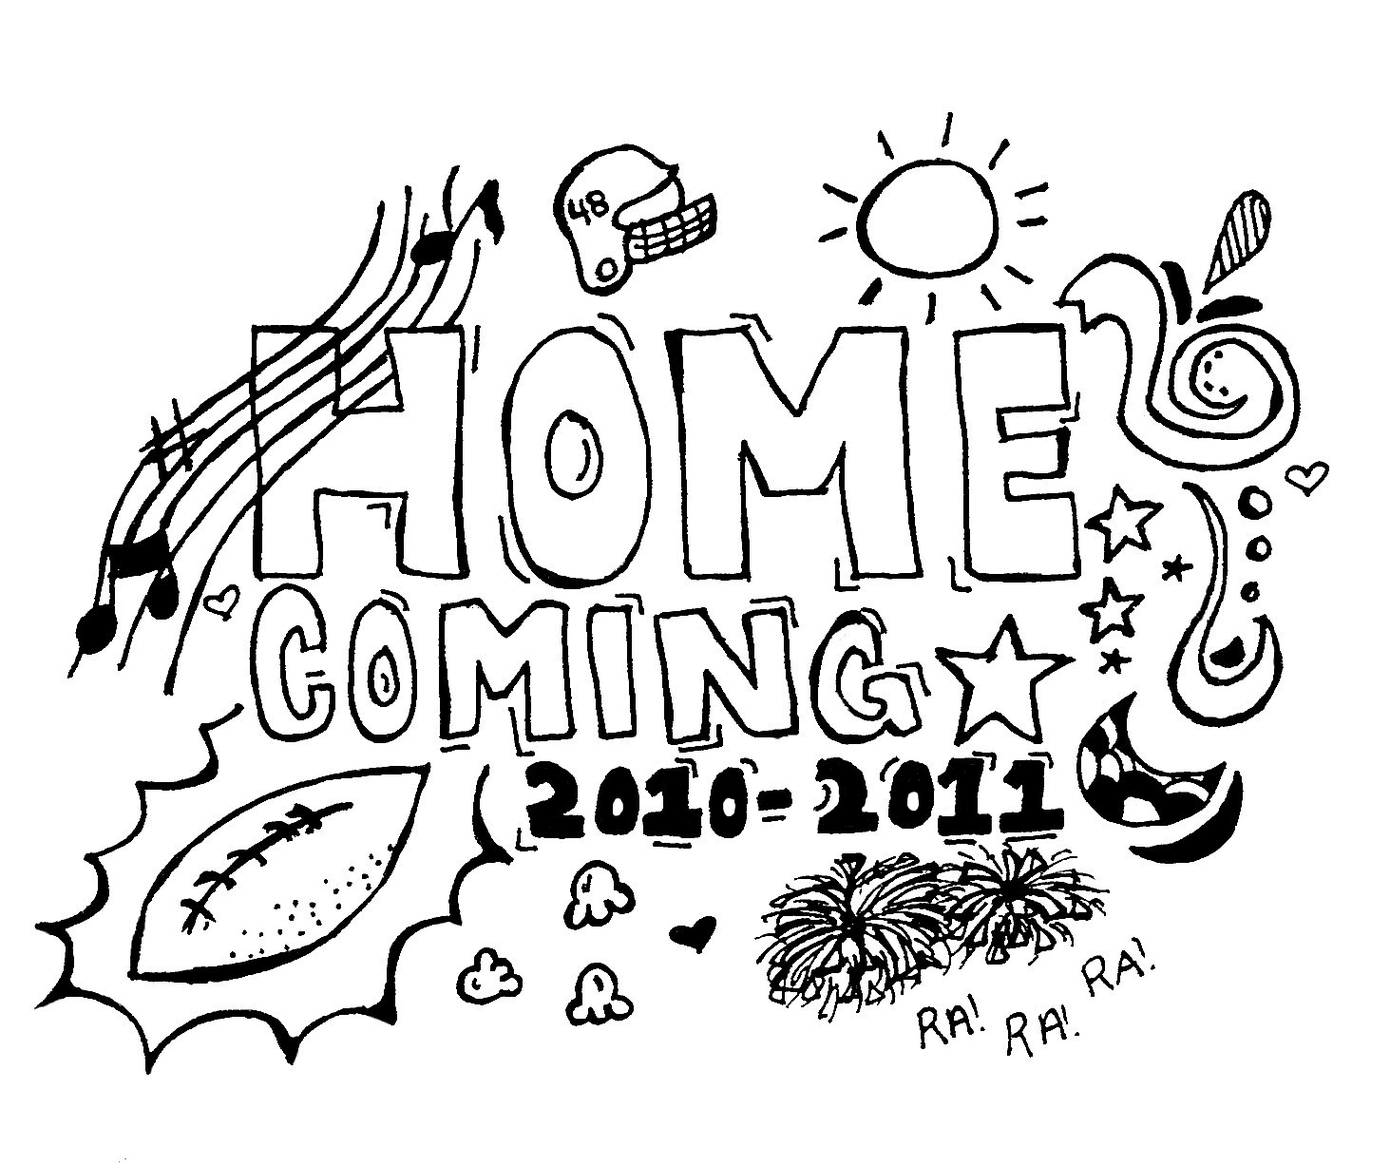 Free Homecoming Dance Cliparts, Download Free Clip Art